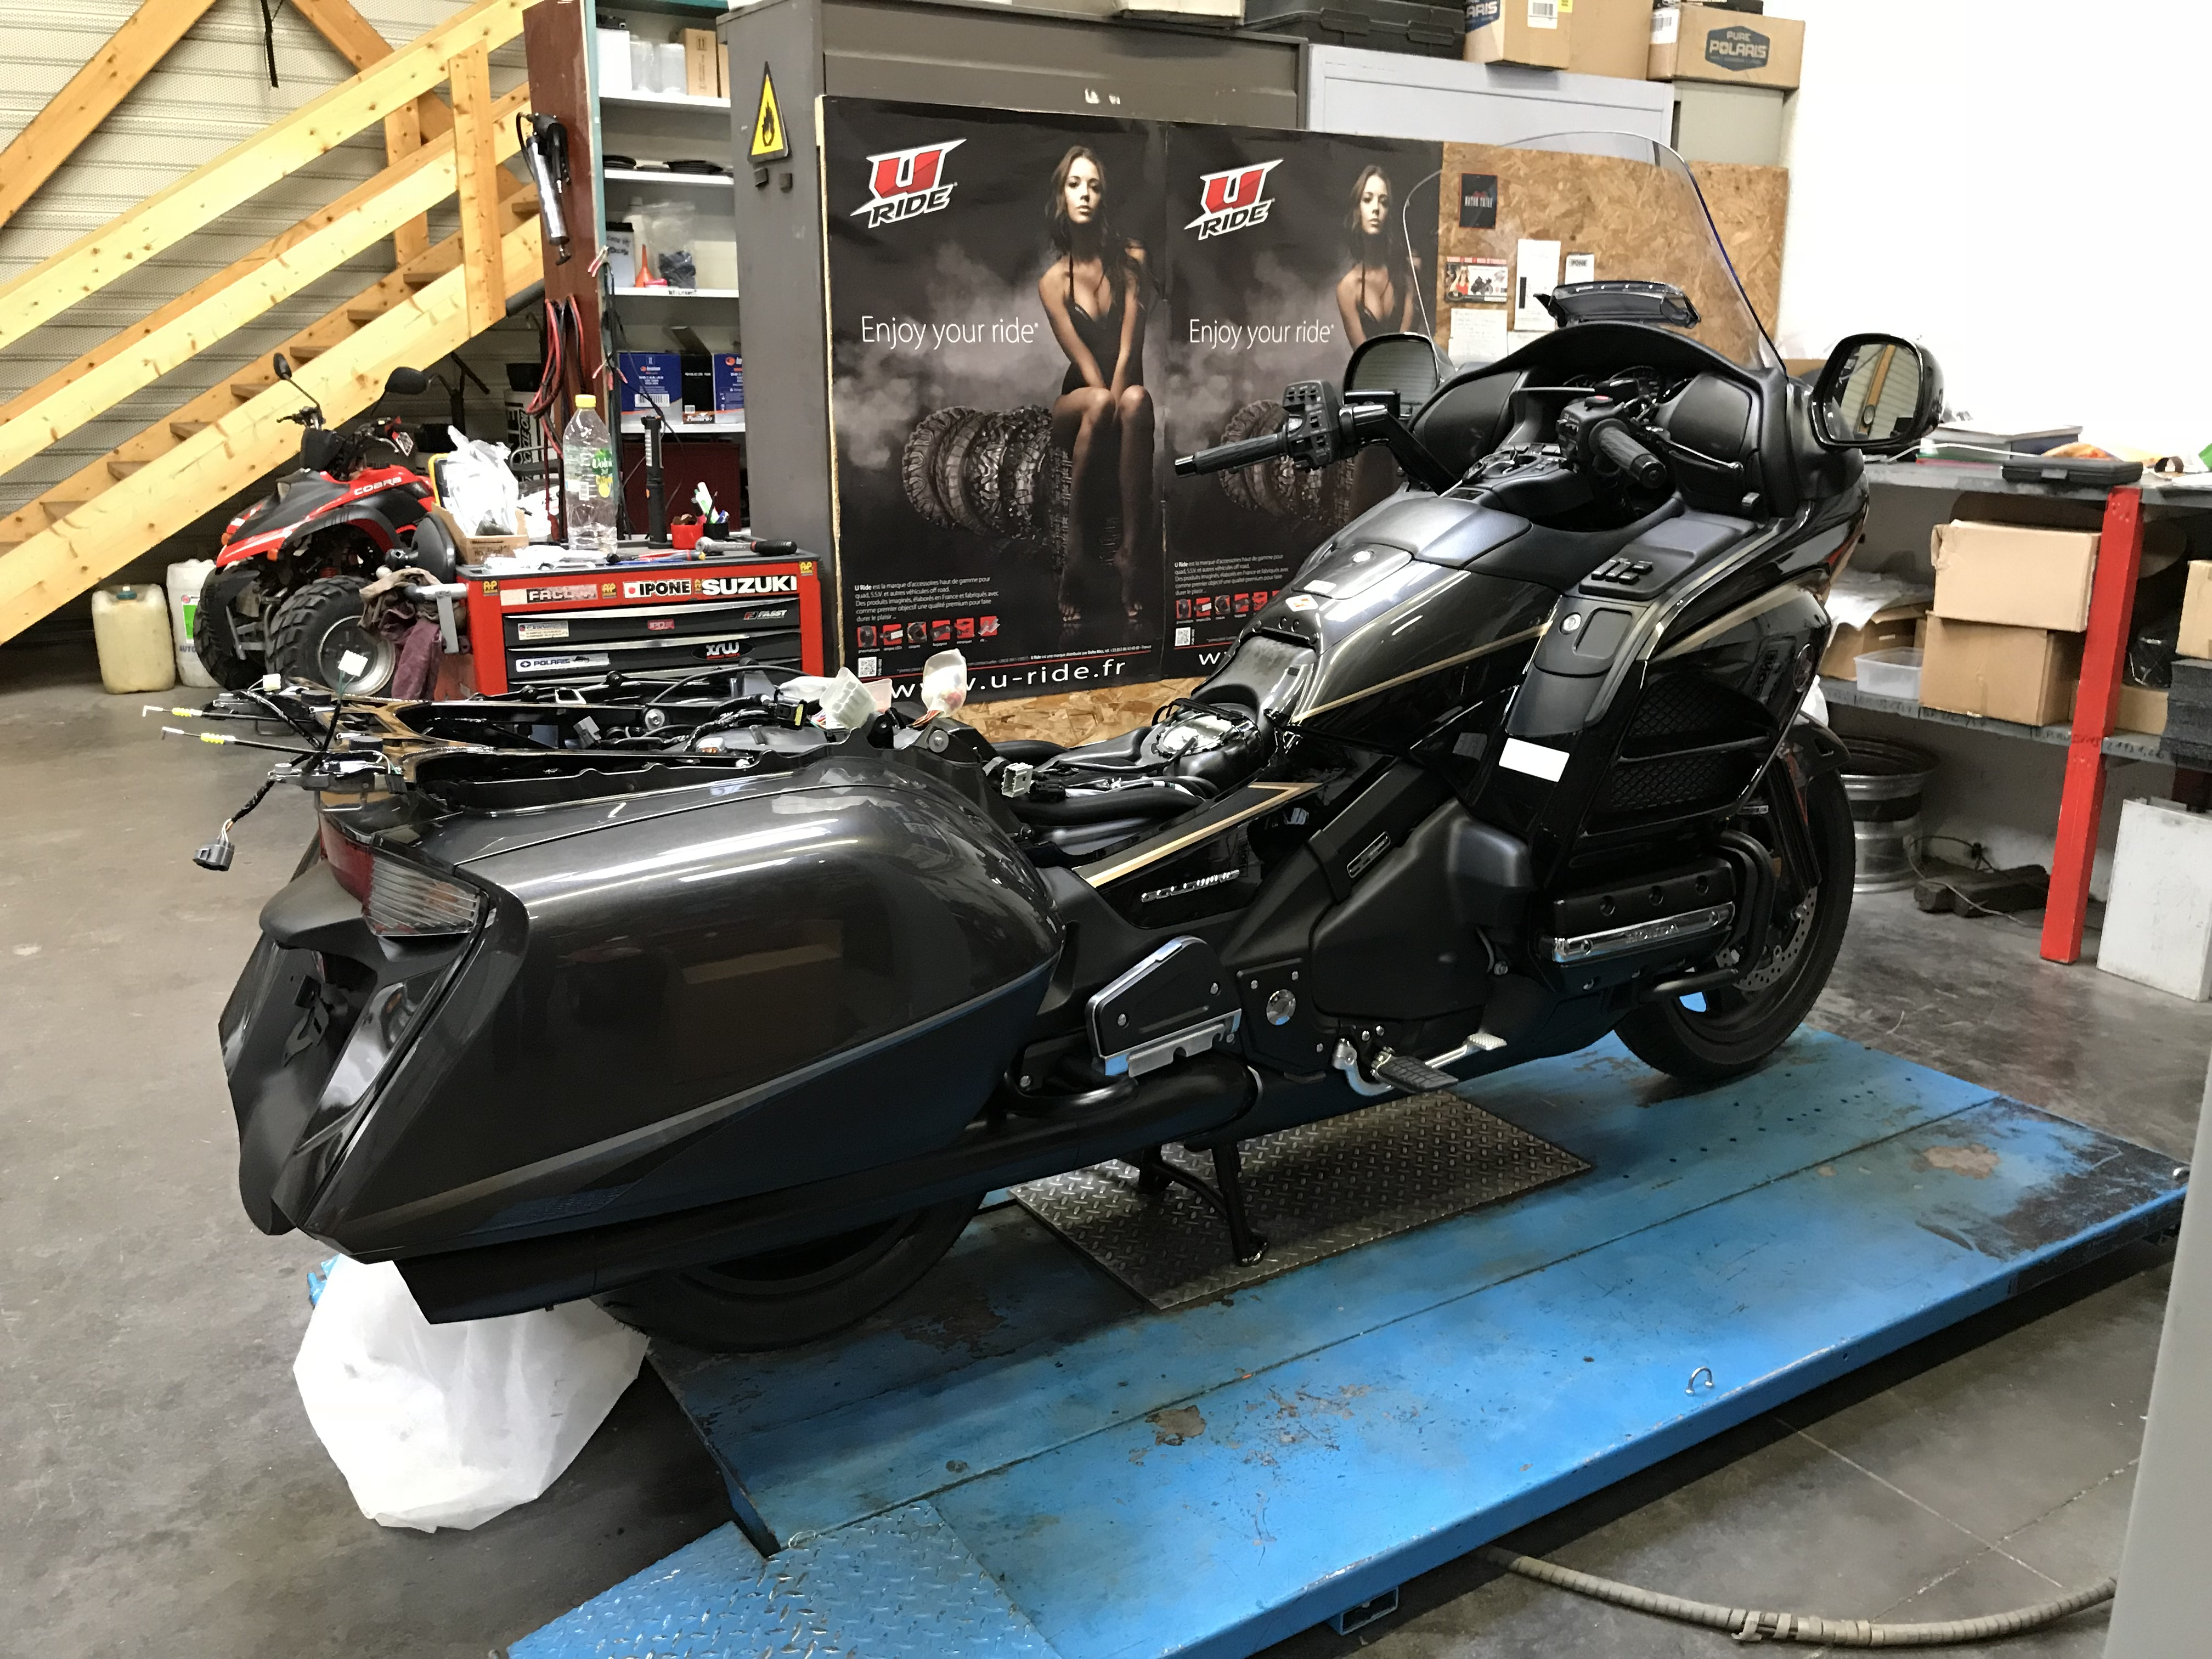 TRANSFORMATION D'UNE MOTO EN TRIKE